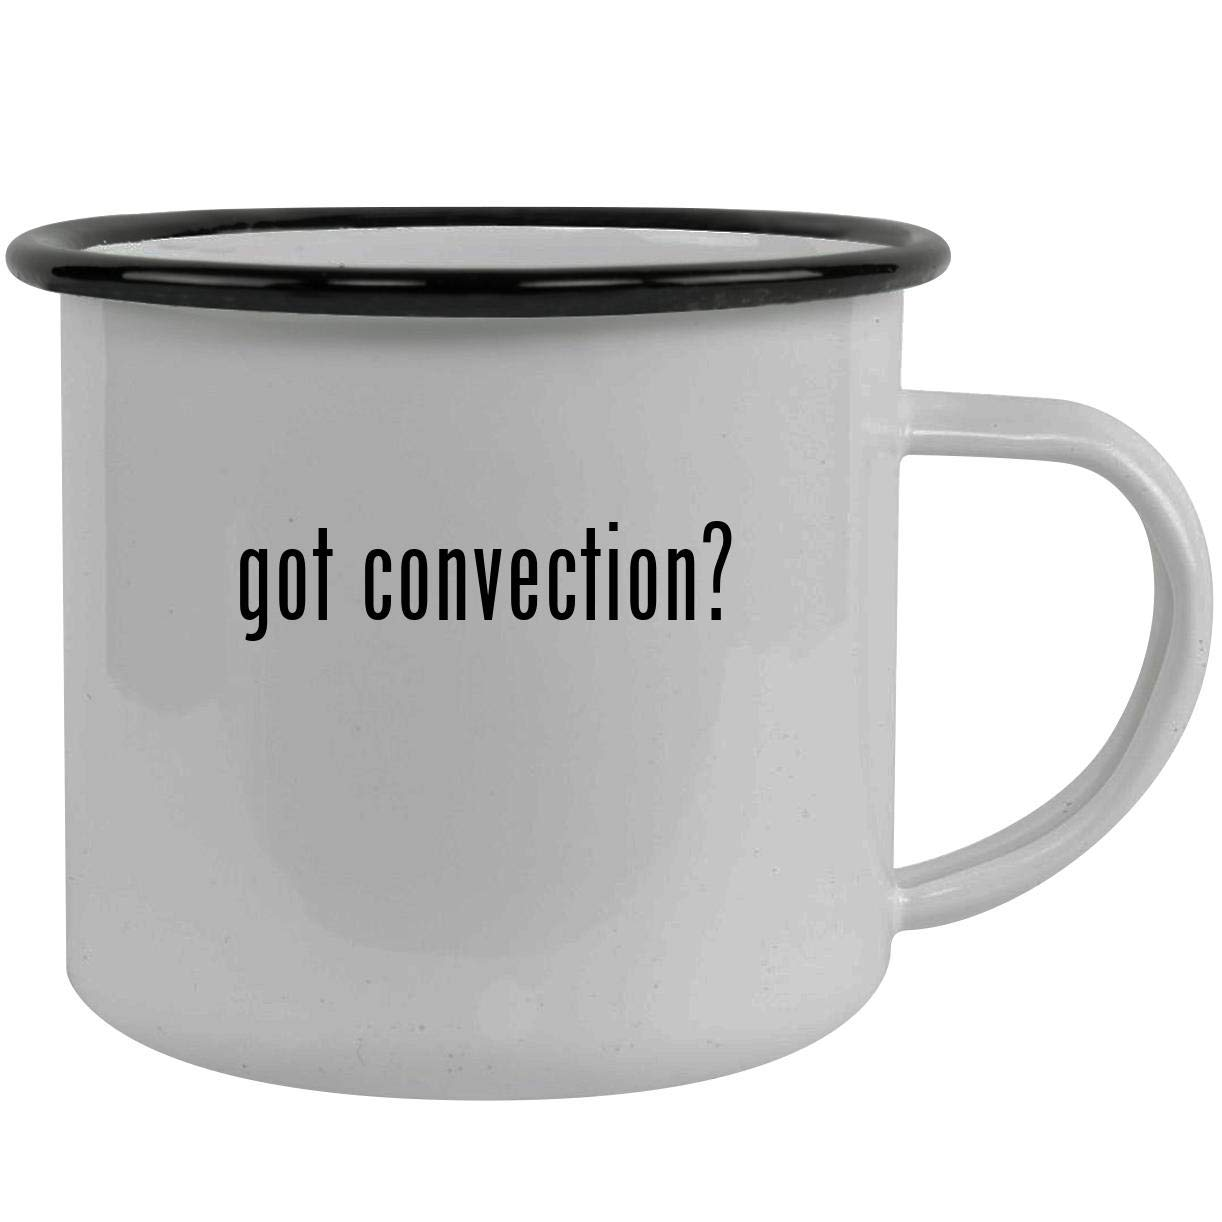 got convection? - Stainless Steel 12oz Camping Mug, Black